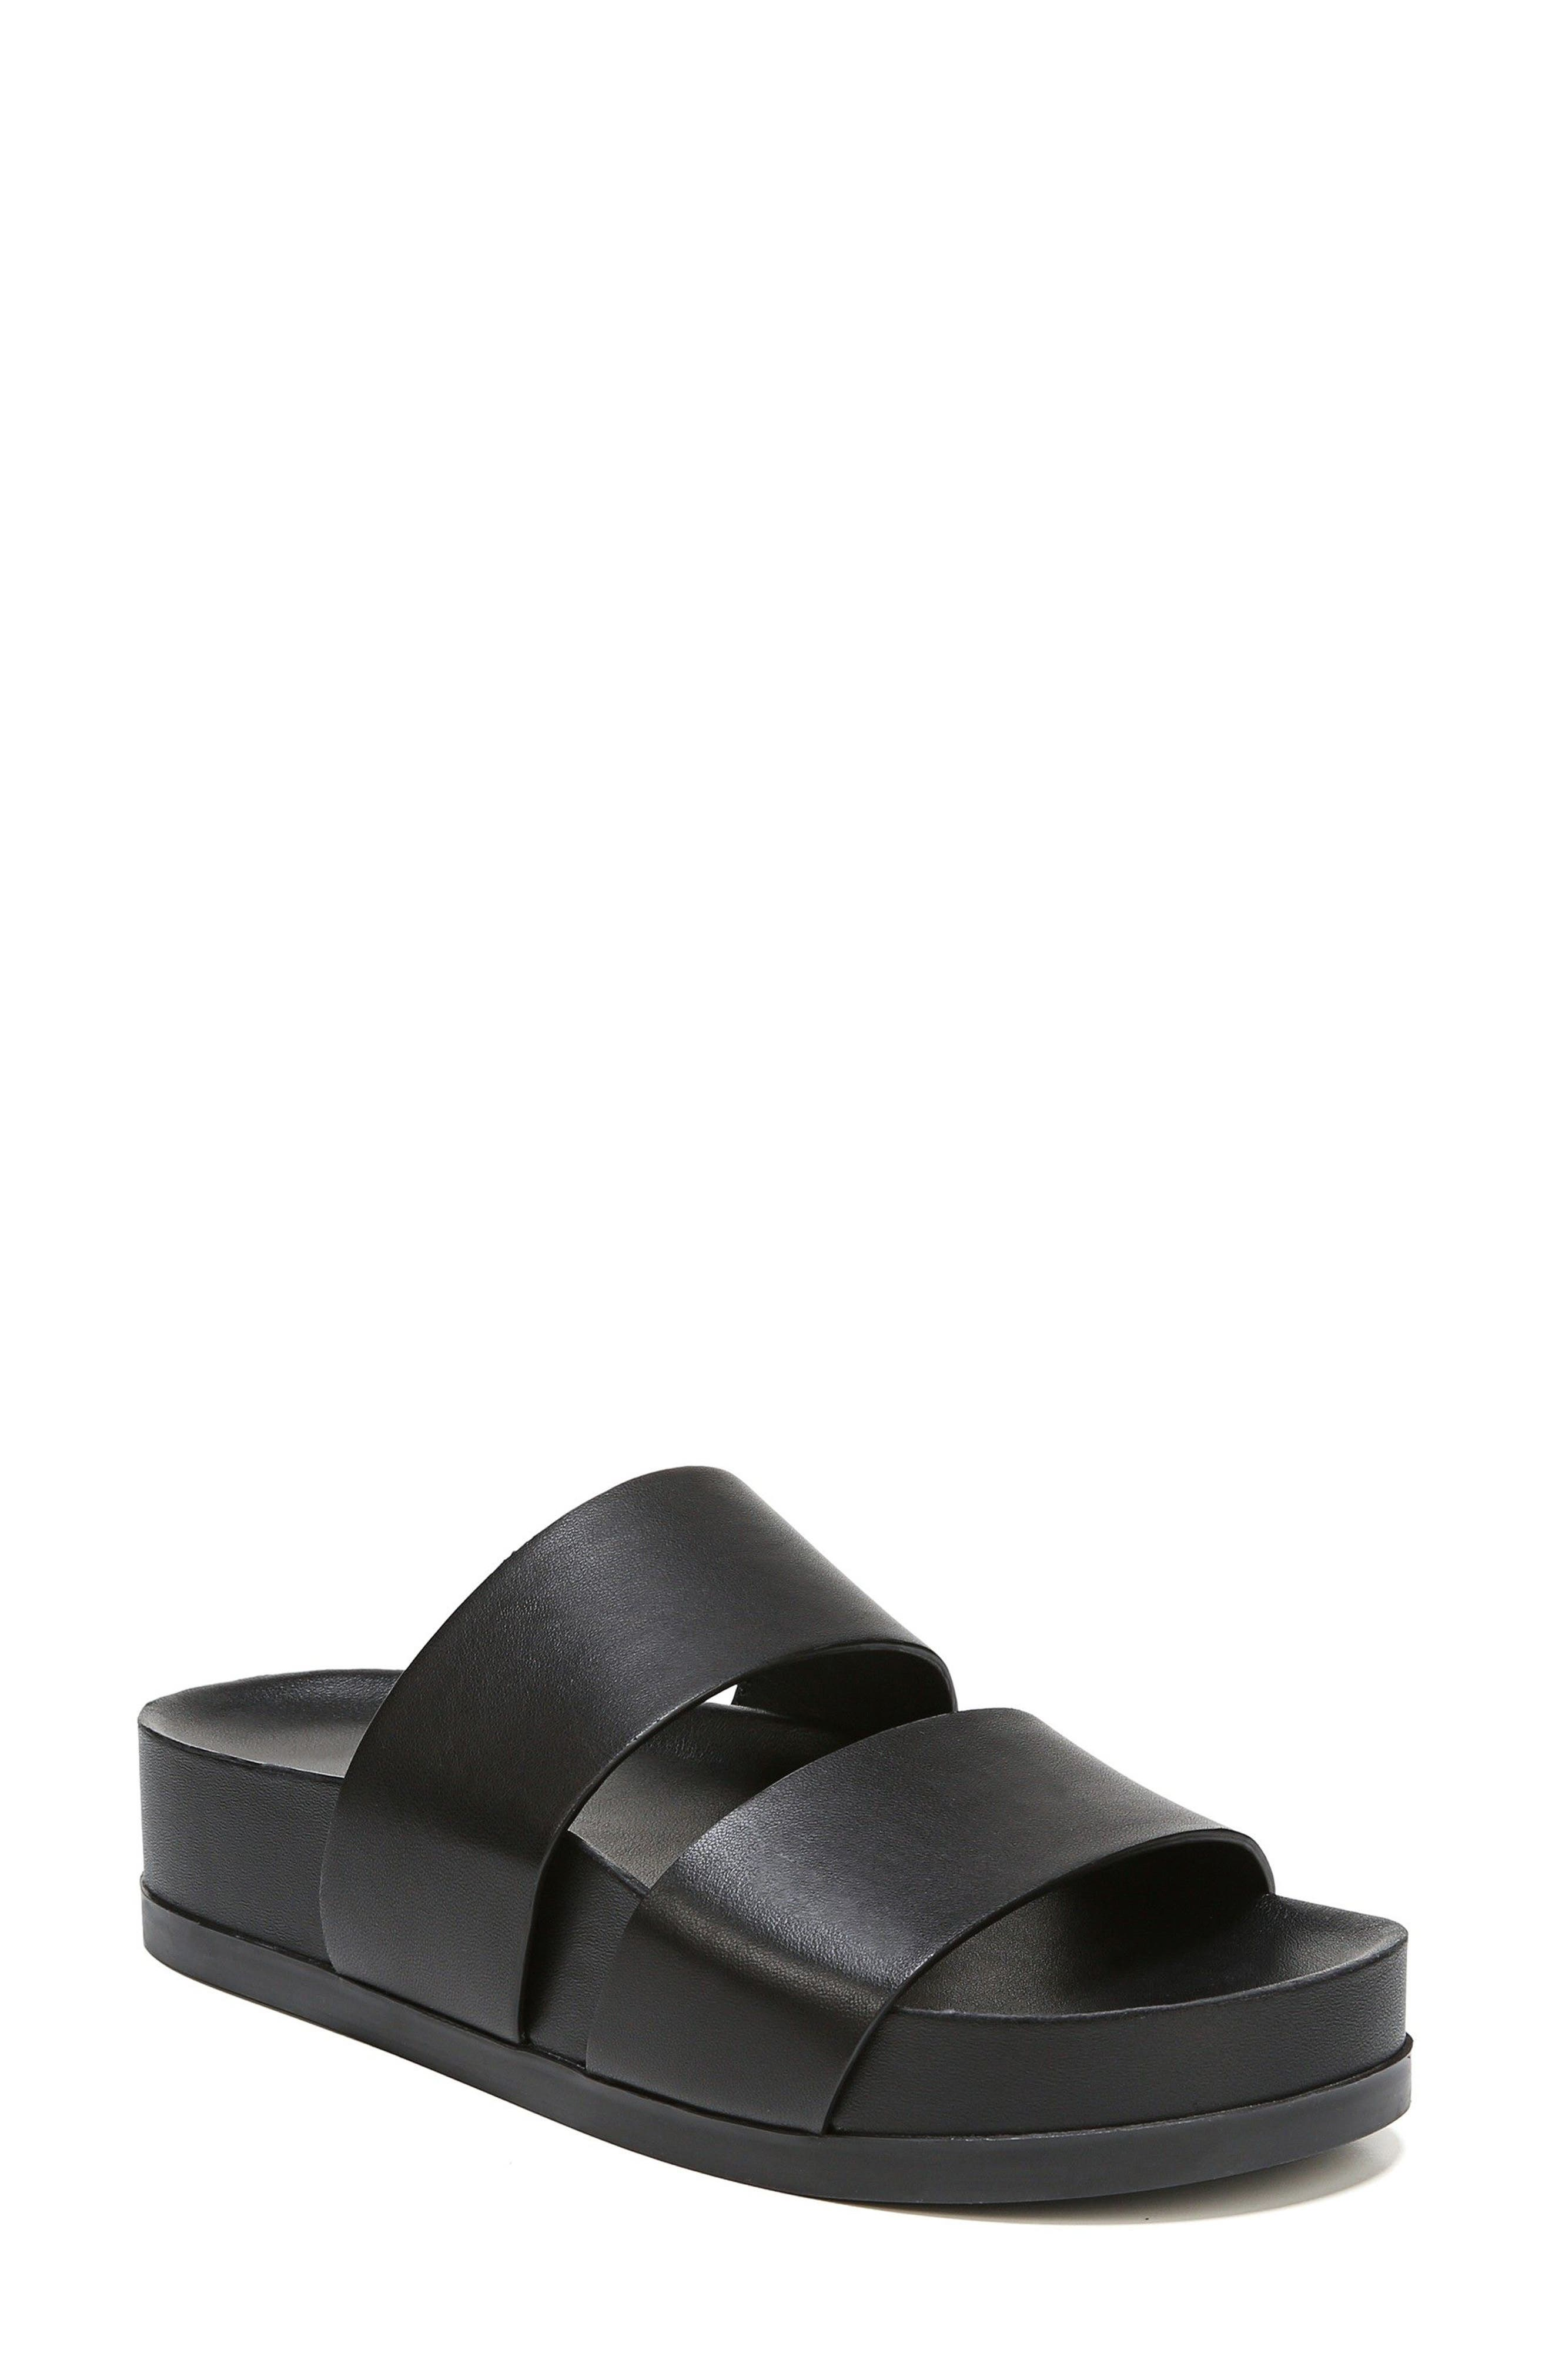 VIA SPIGA,                             Milton Slide Sandal,                             Main thumbnail 1, color,                             001